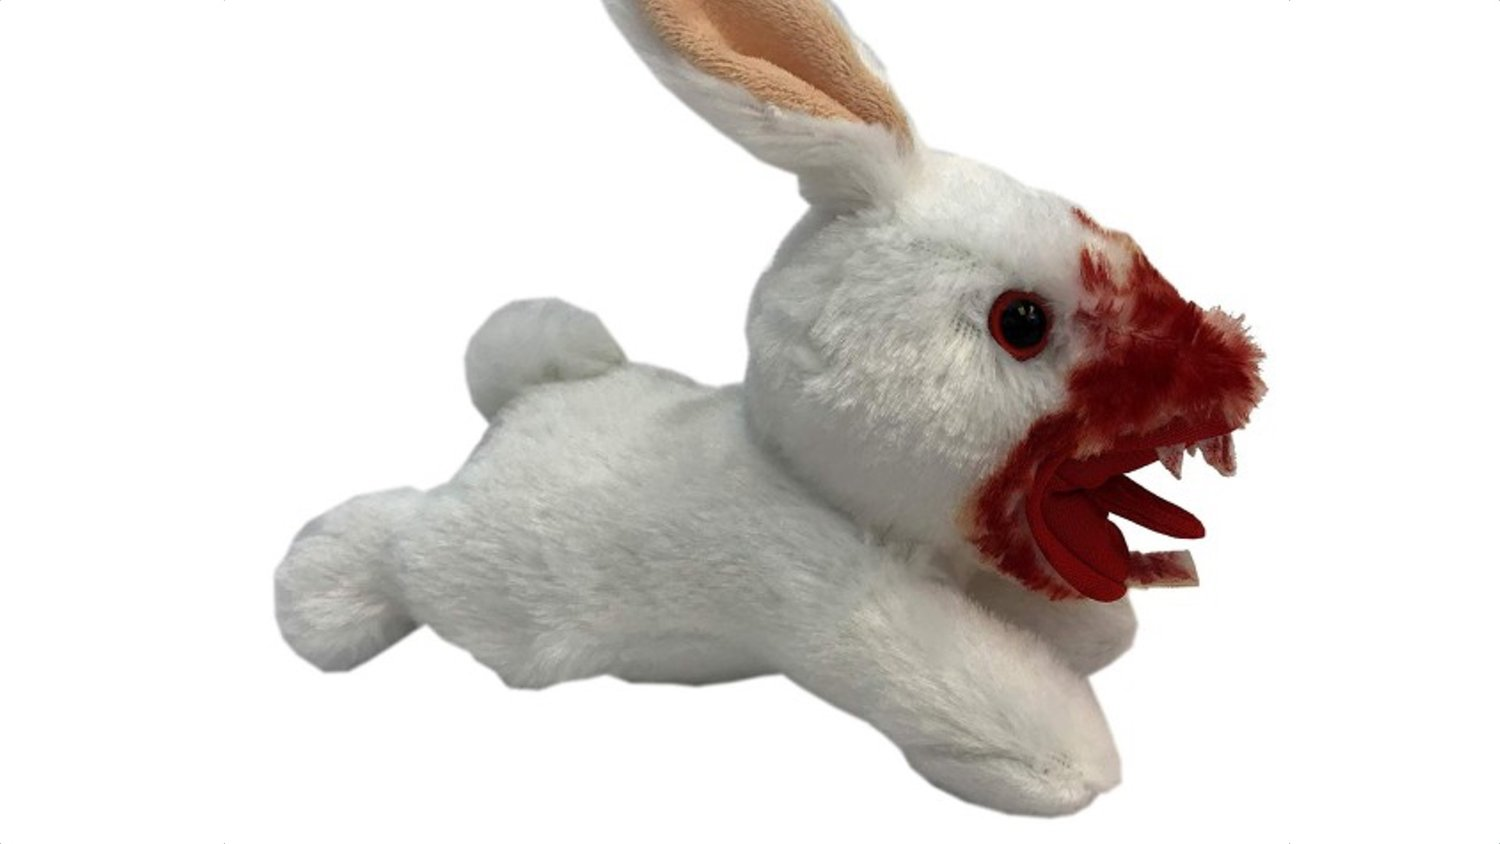 The Bloody Killer Rabbit From MONTY PYTHON AND THE HOLY GRAIL is Now a  Plush Toy — GeekTyrant